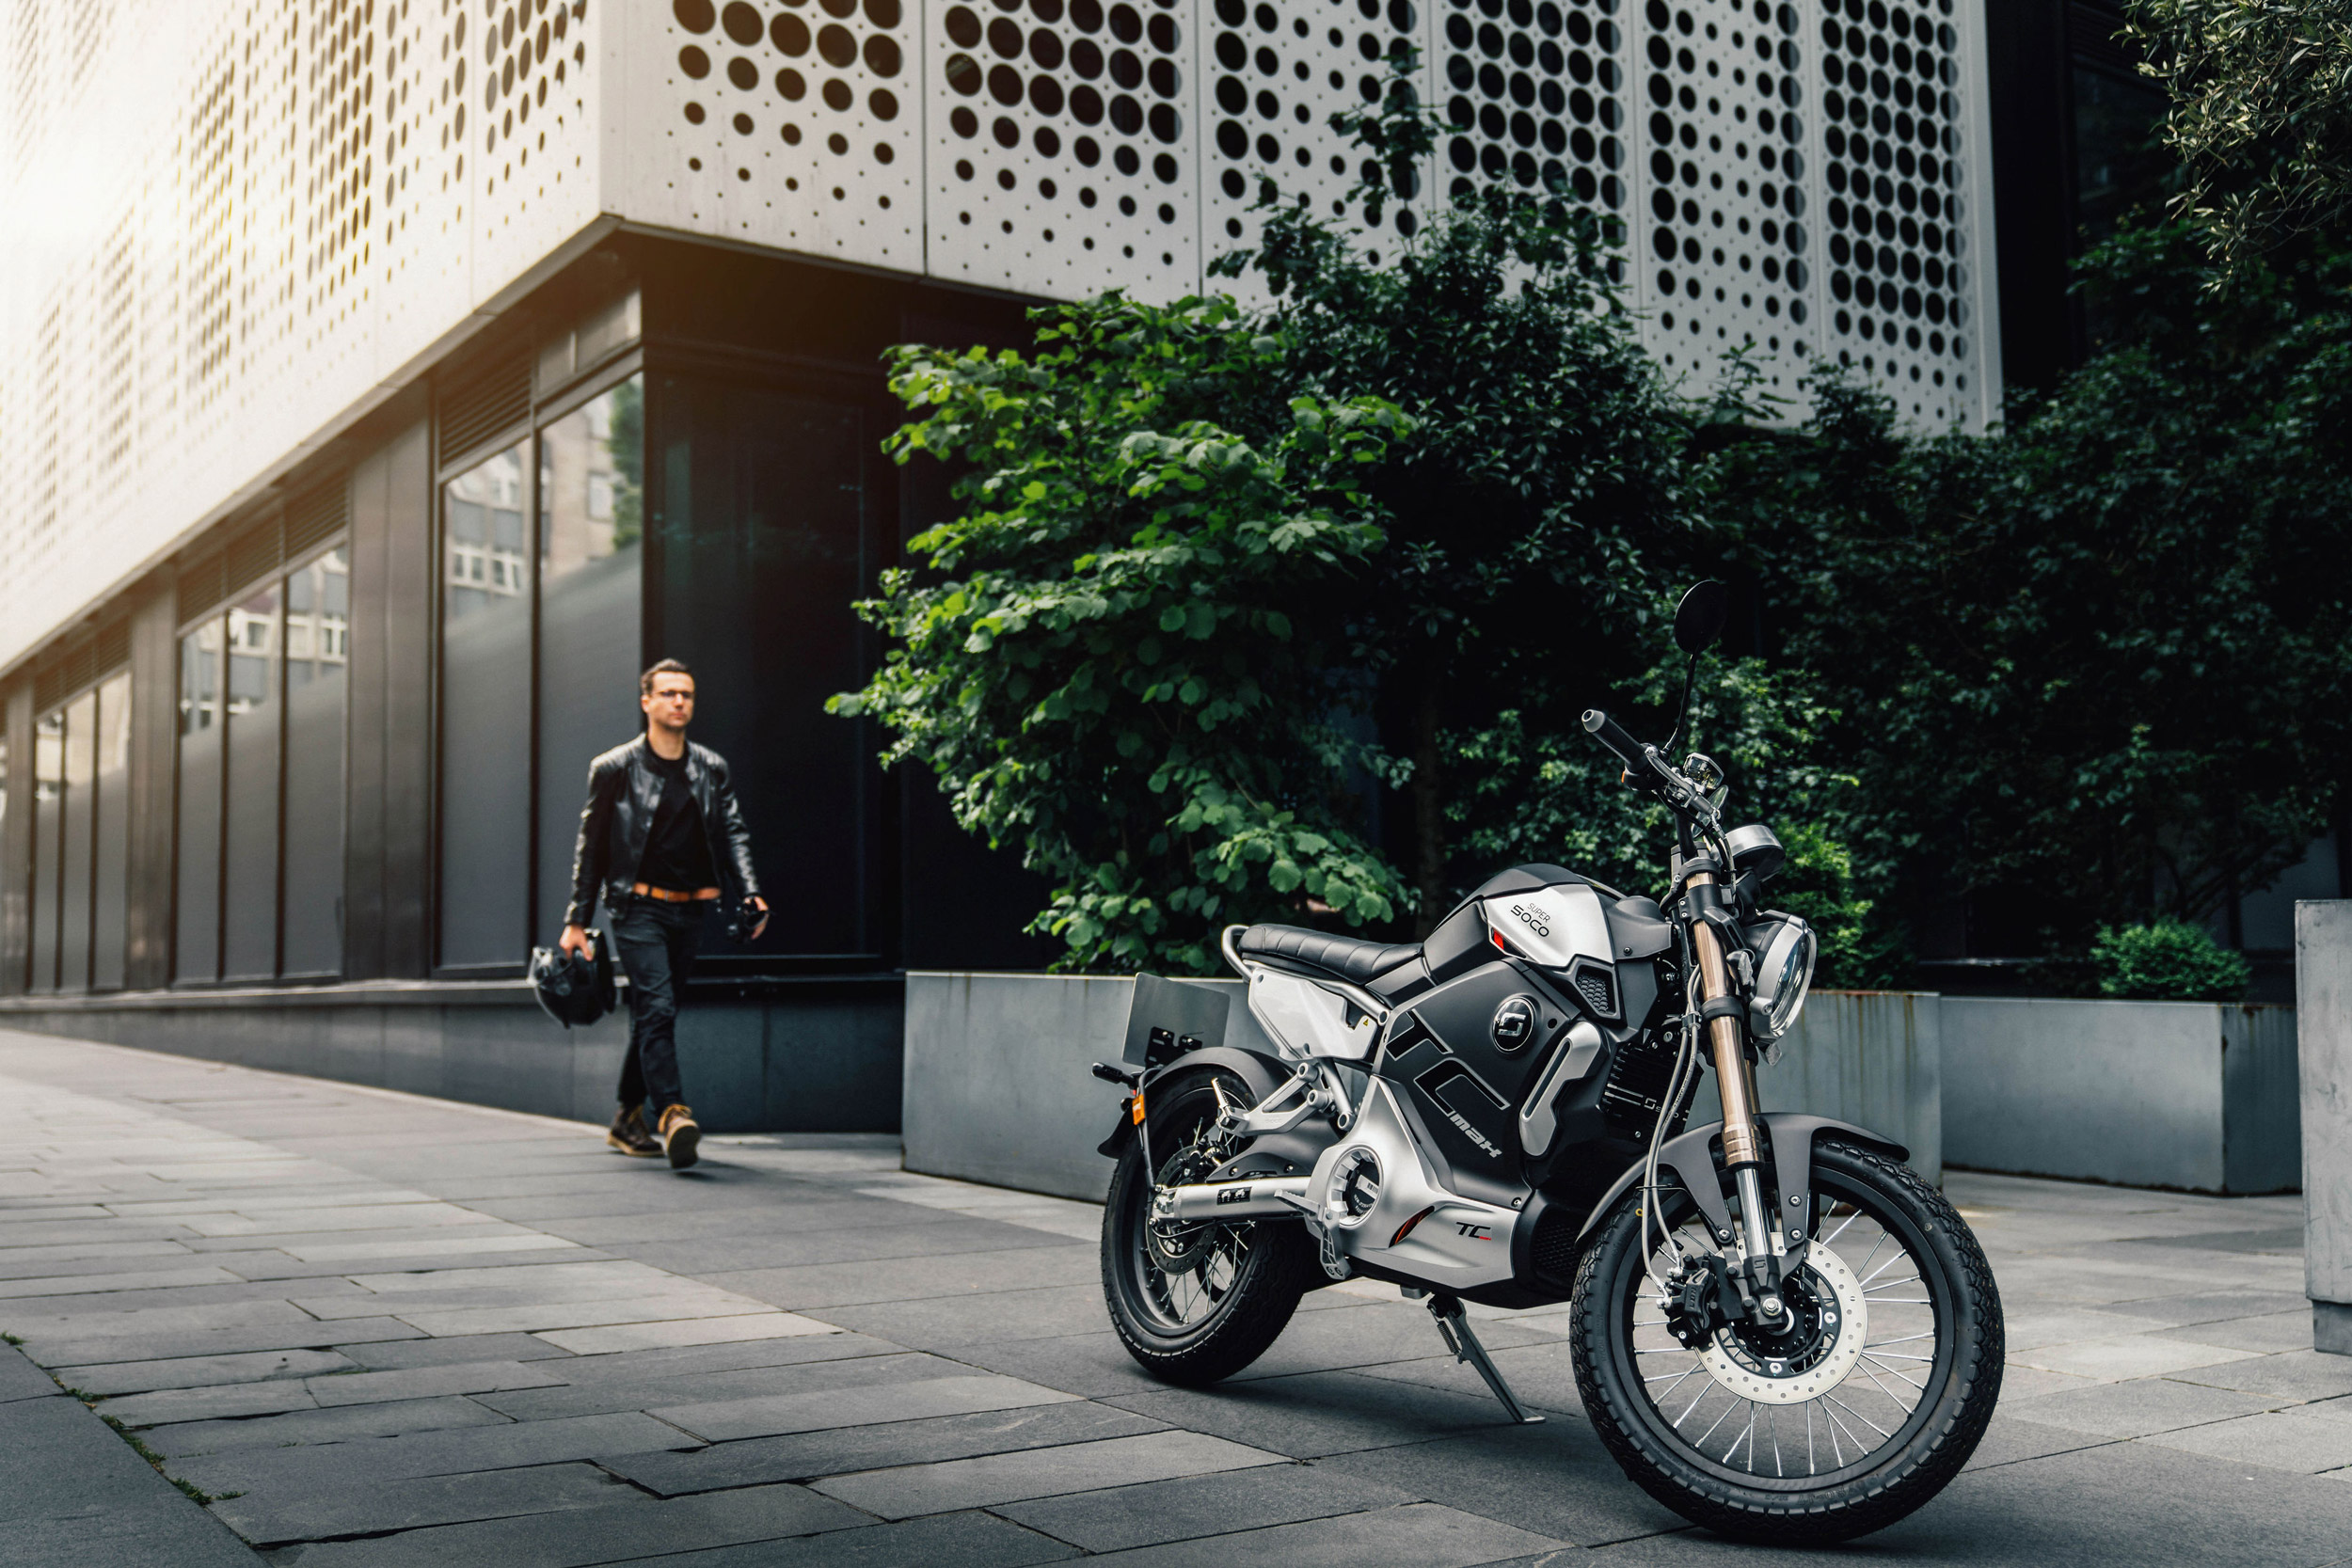 London Ultra Low Emission Zone expansion with Super Soco ecetric motorcycles providing the ideal alternative option to get around